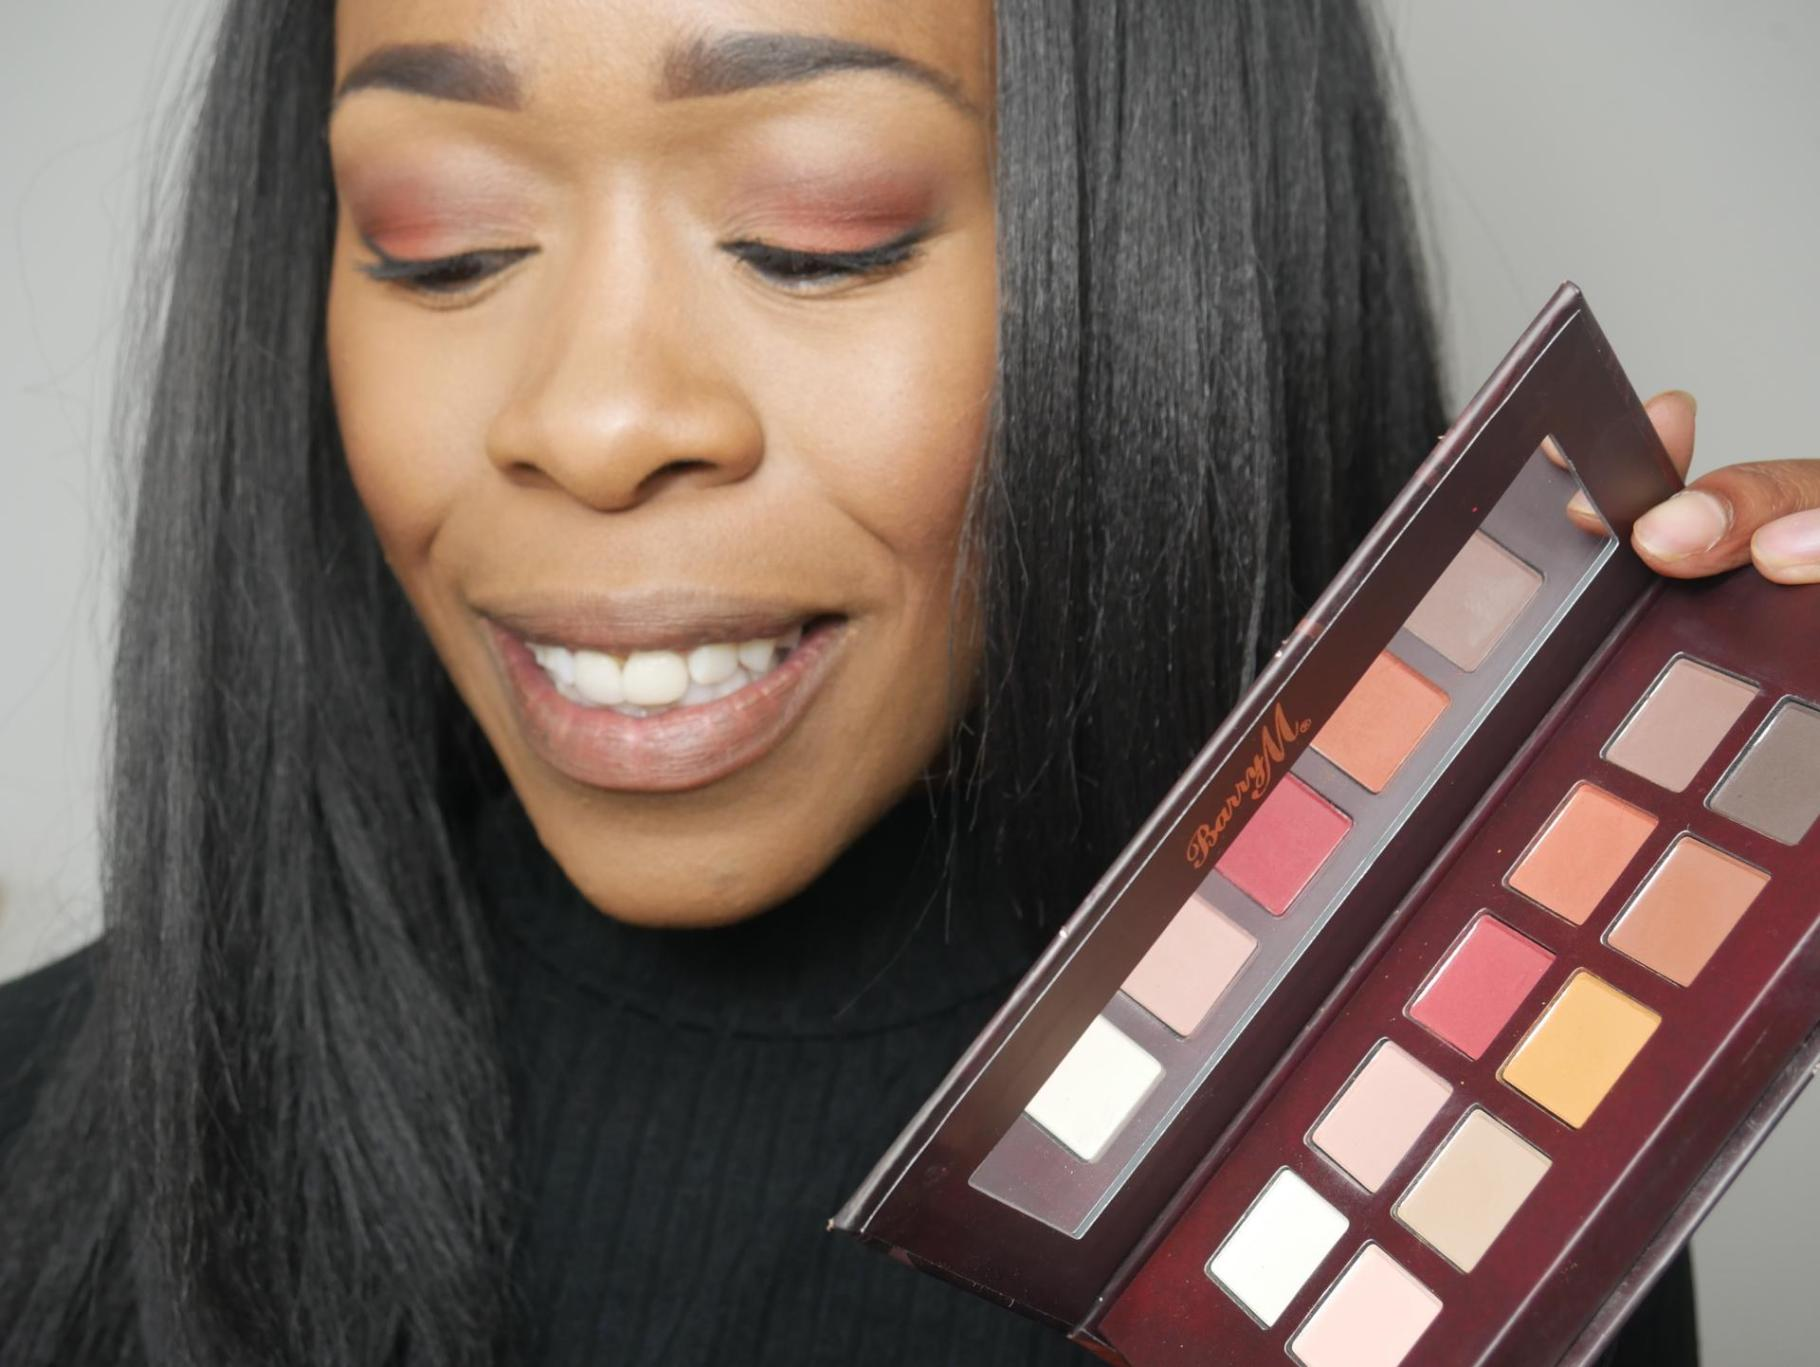 Testing A Full Face Of Cruelty Free Makeup= WOC friendly | Drugstore #1 | www.kittyandb.com